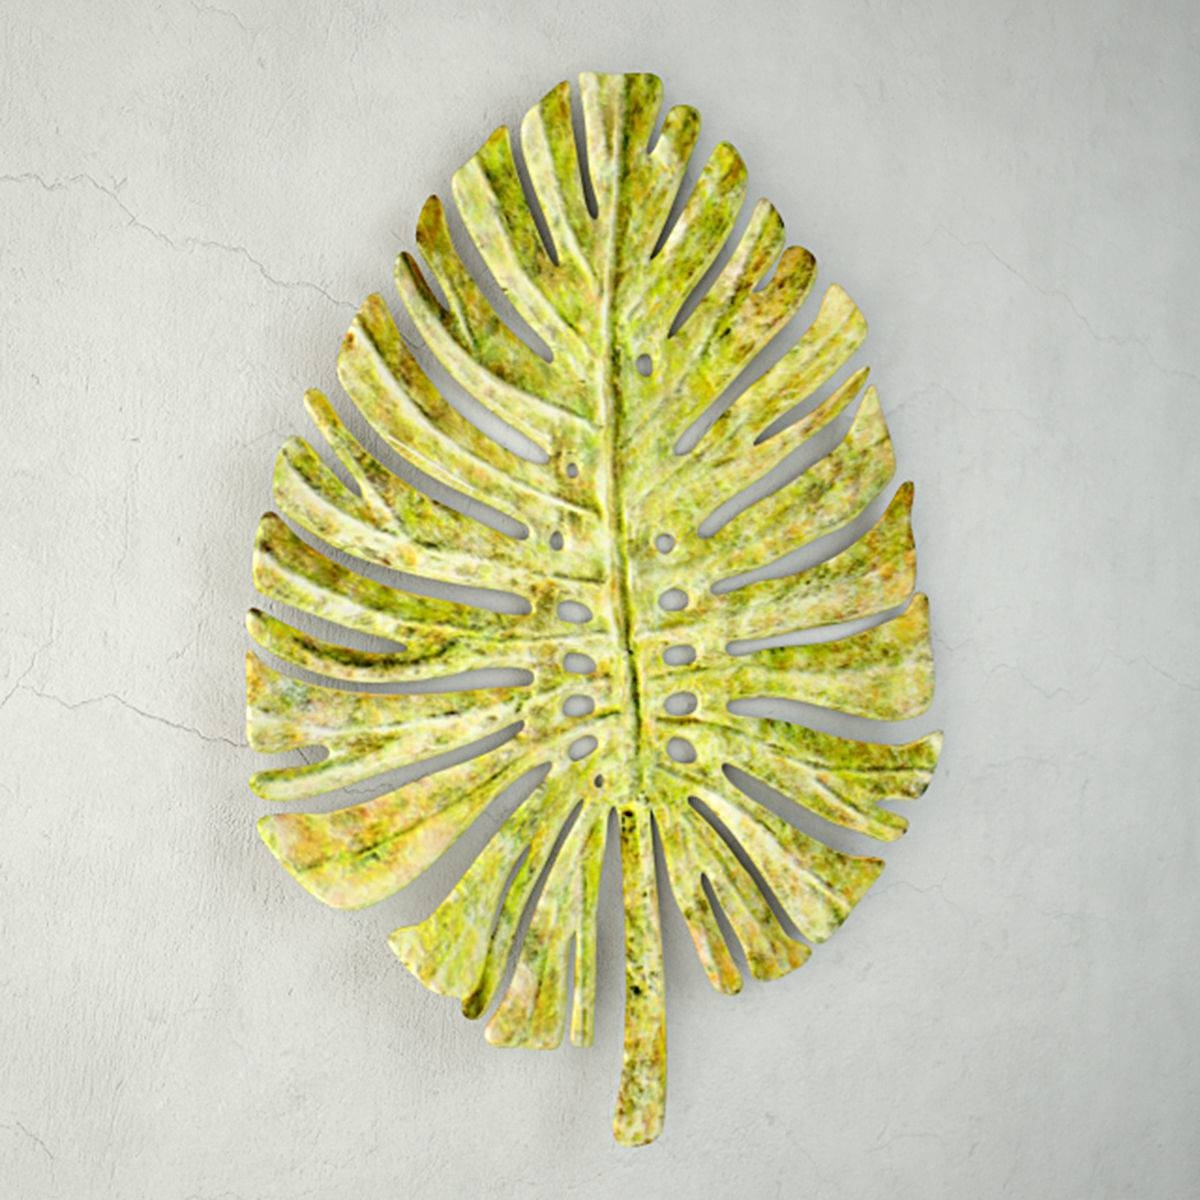 3d Model Green Metal Leaf Wall Art | Cgtrader Throughout Most Recent Green Metal Wall Art (View 5 of 20)